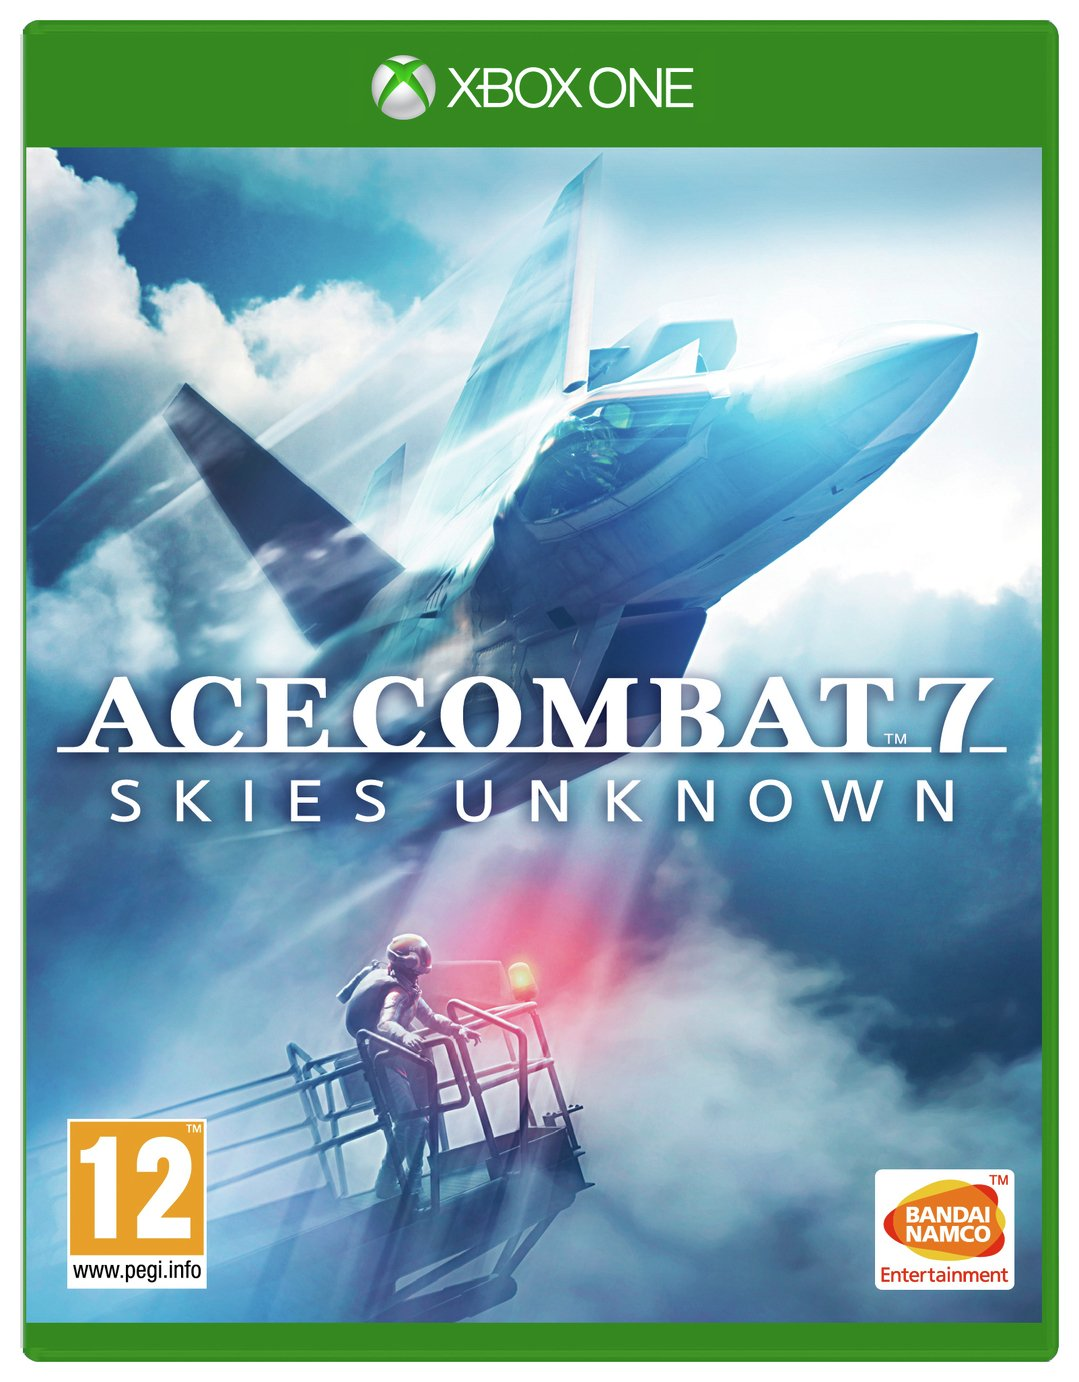 Image of Ace Combat 7: Skies Unknown Xbox One Pre-Order Game